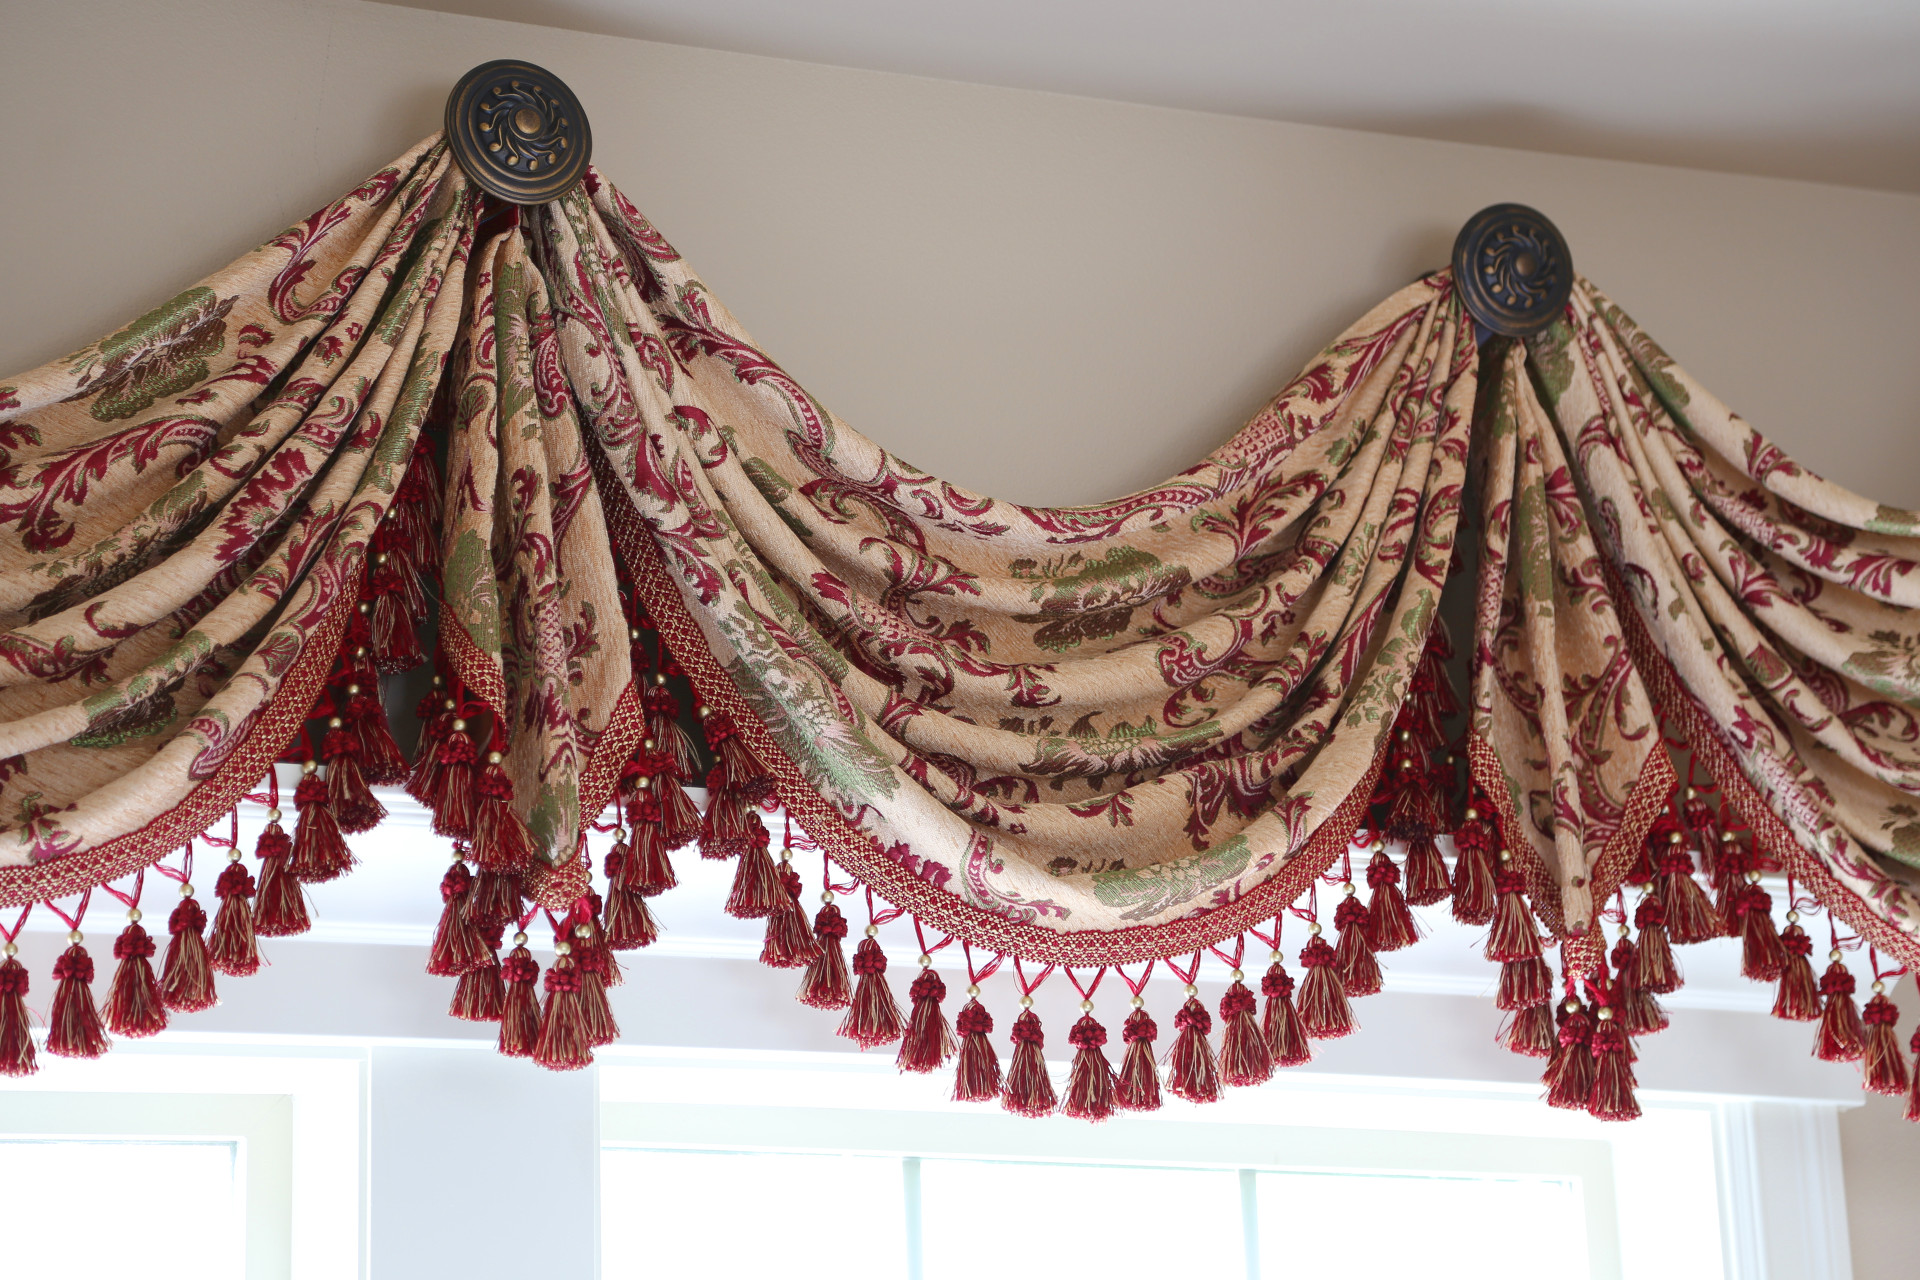 Rosy Queen Swags Over Rosette Valance Curtain D S